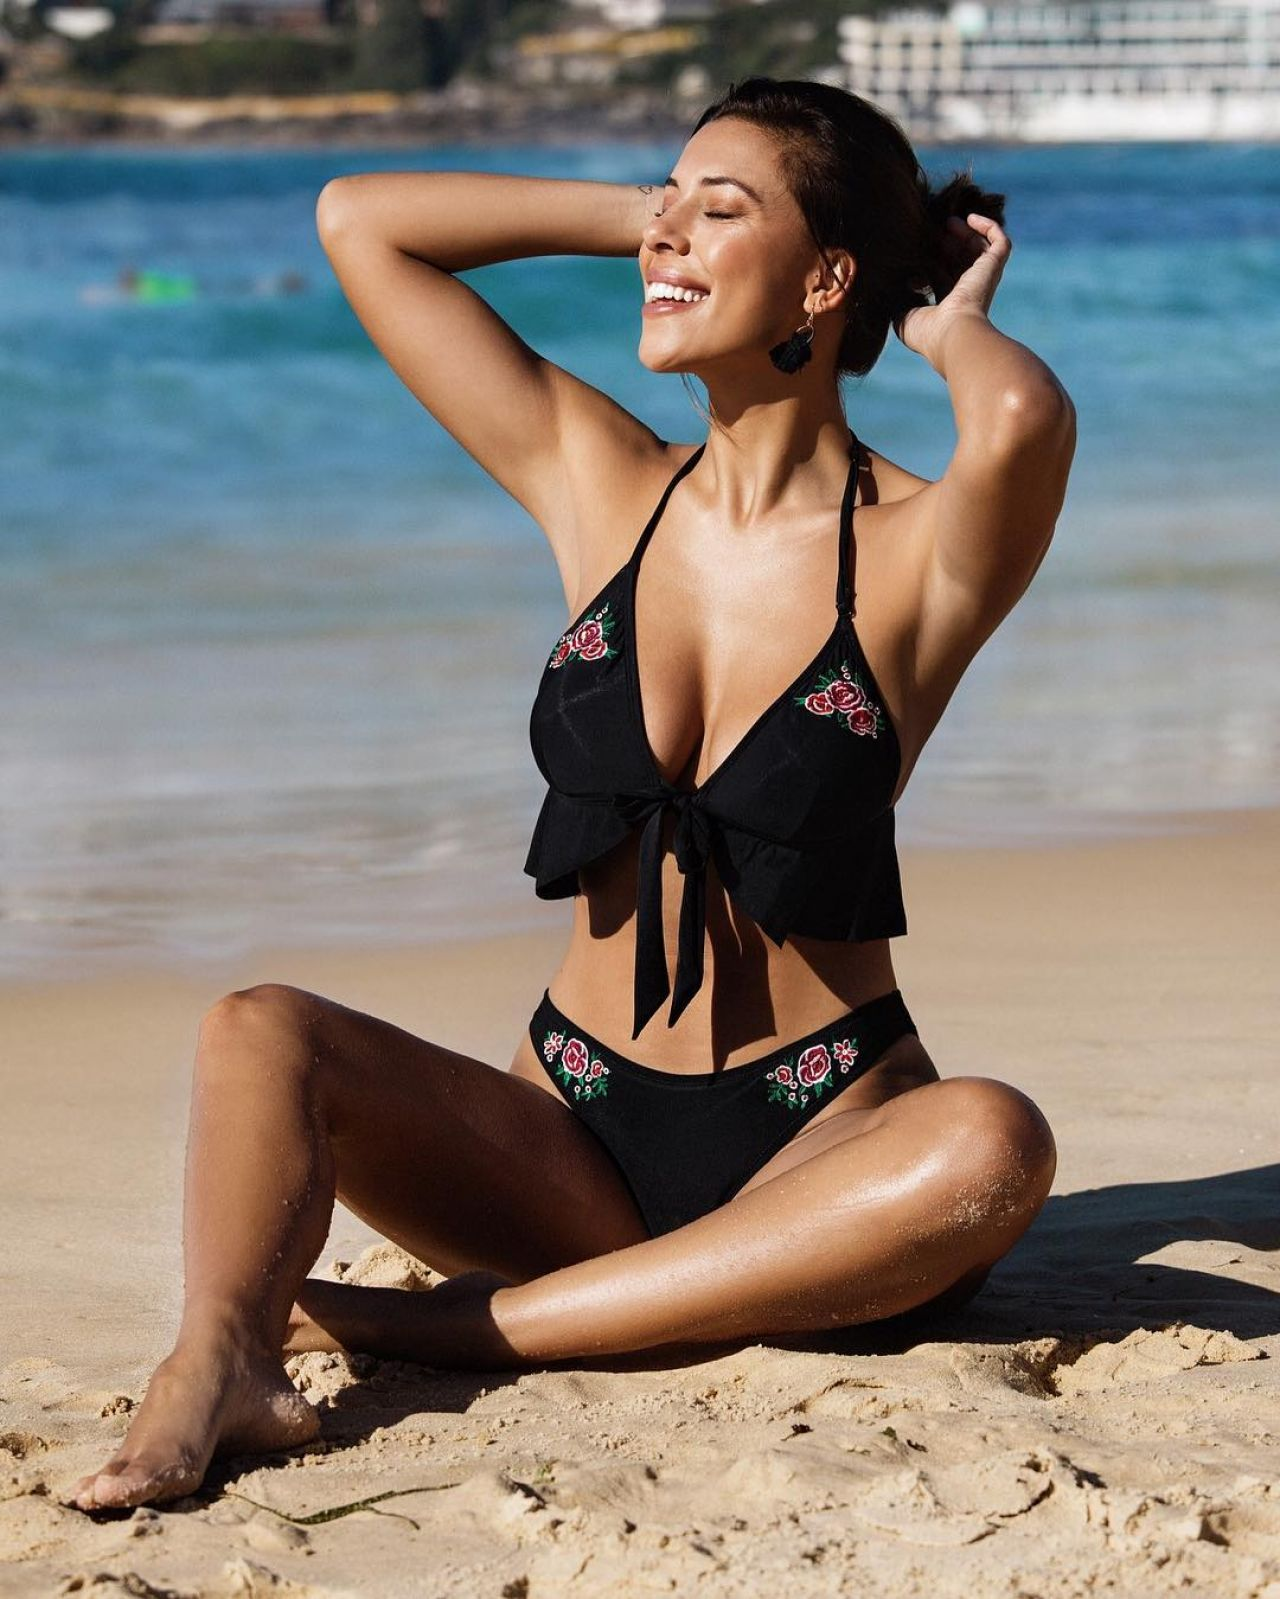 Celebrites Devin Brugman nudes (46 foto and video), Pussy, Cleavage, Twitter, in bikini 2017